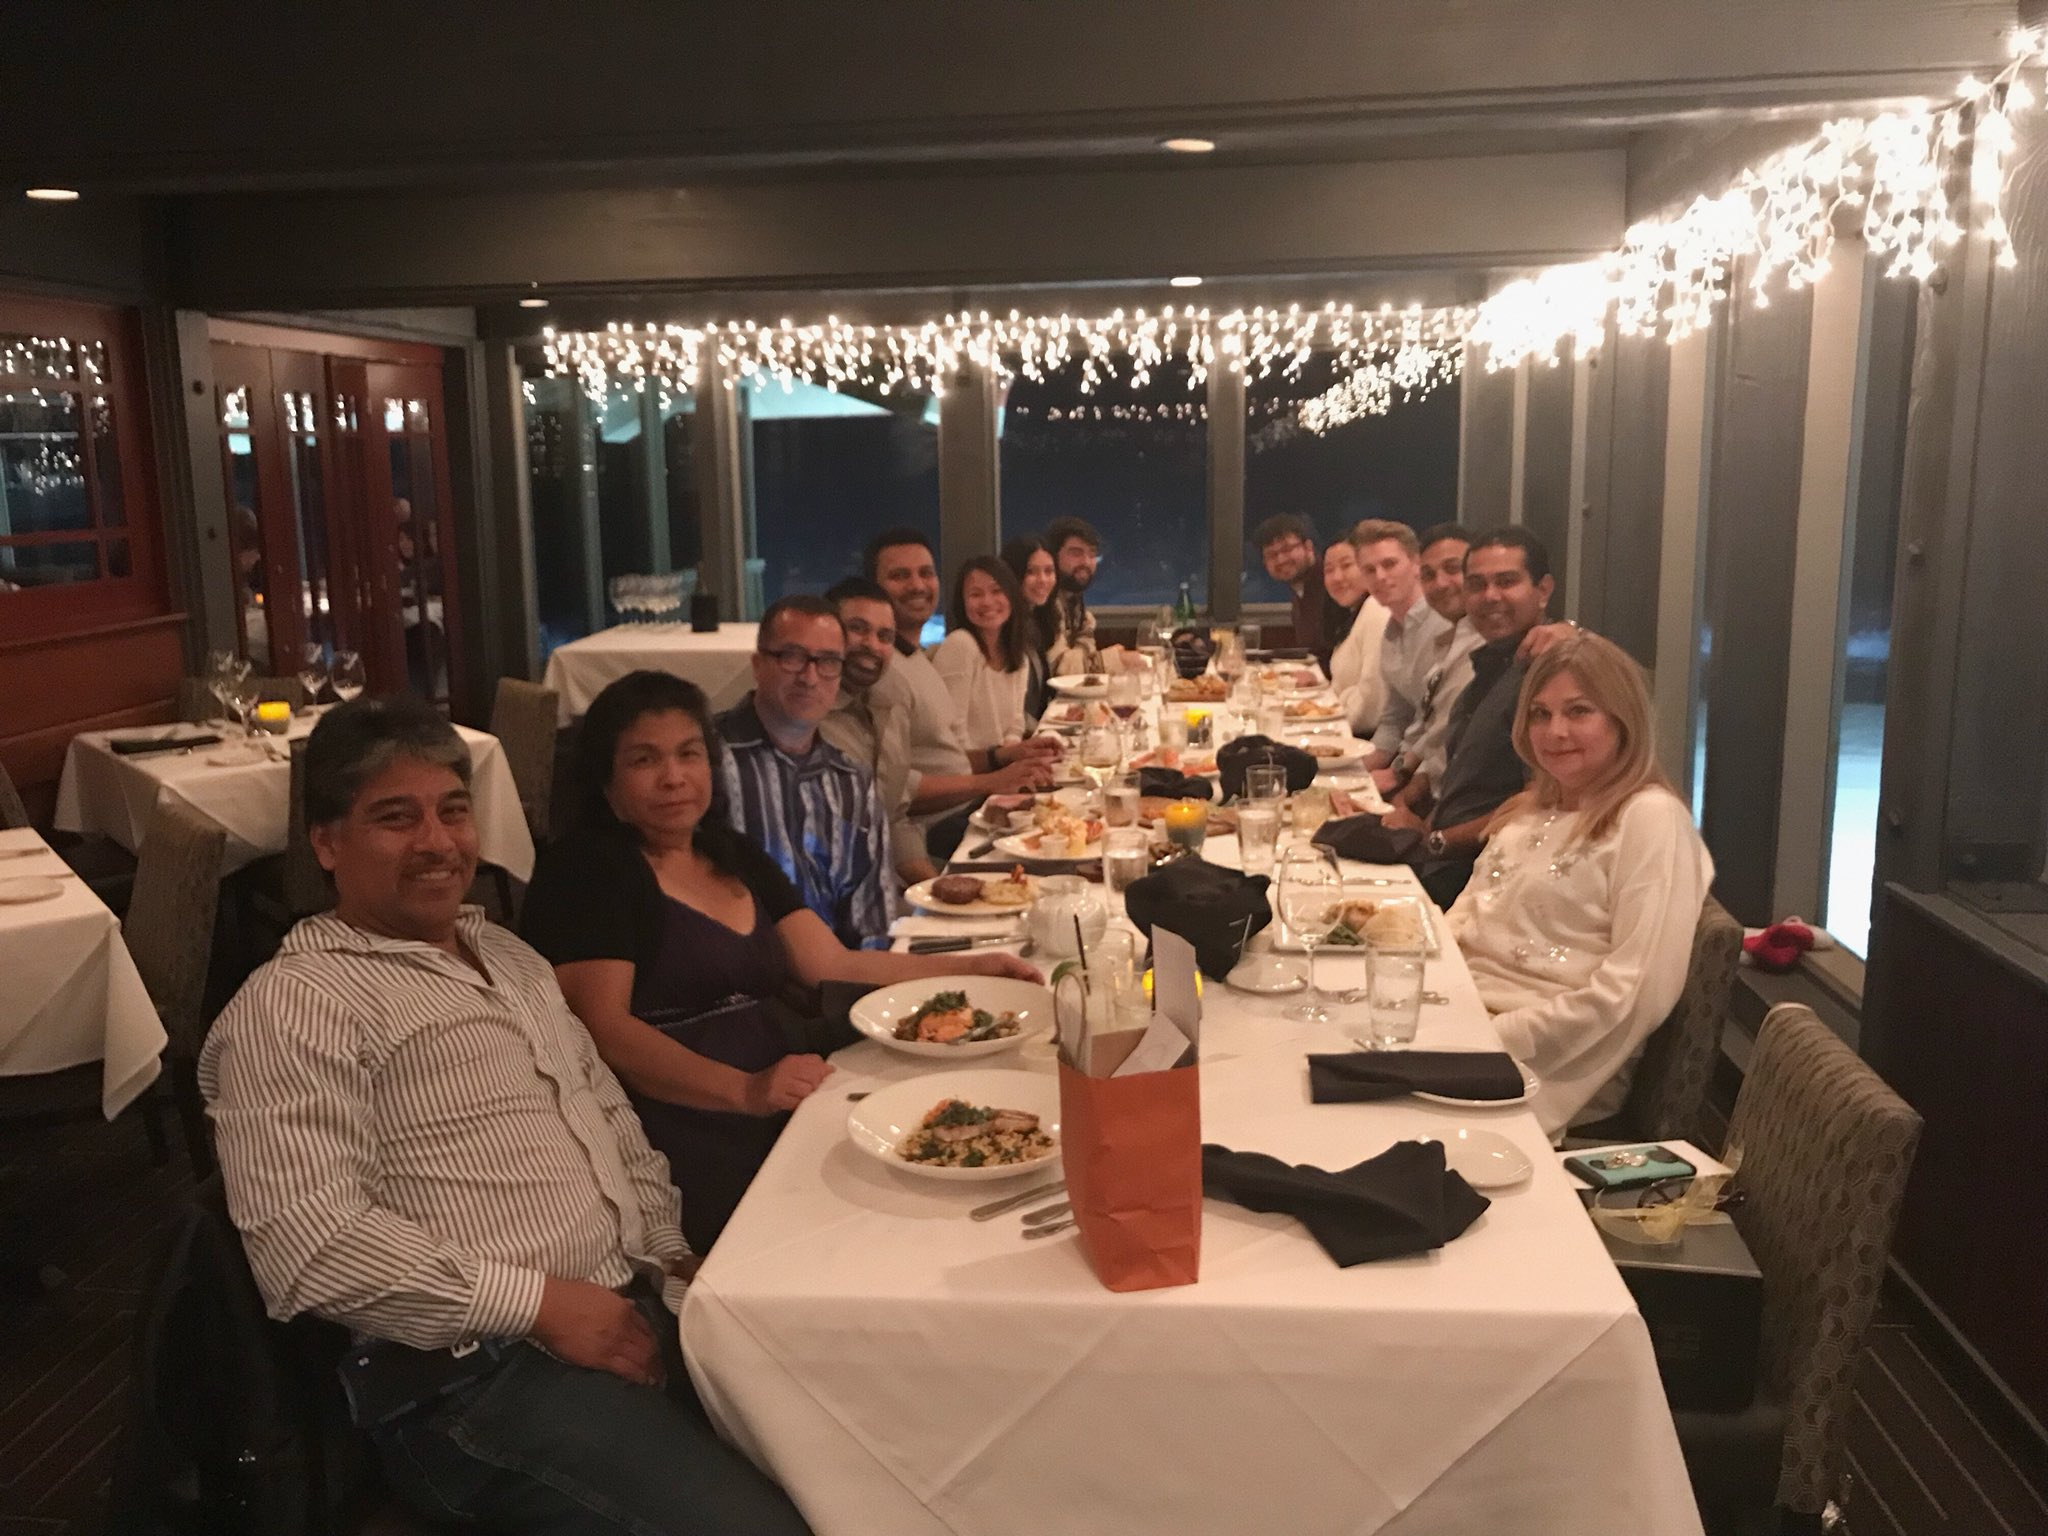 Happy Holidays everyone! From our best team #HEteam #holidays #dinner https://t.co/PSM7gkcmFg